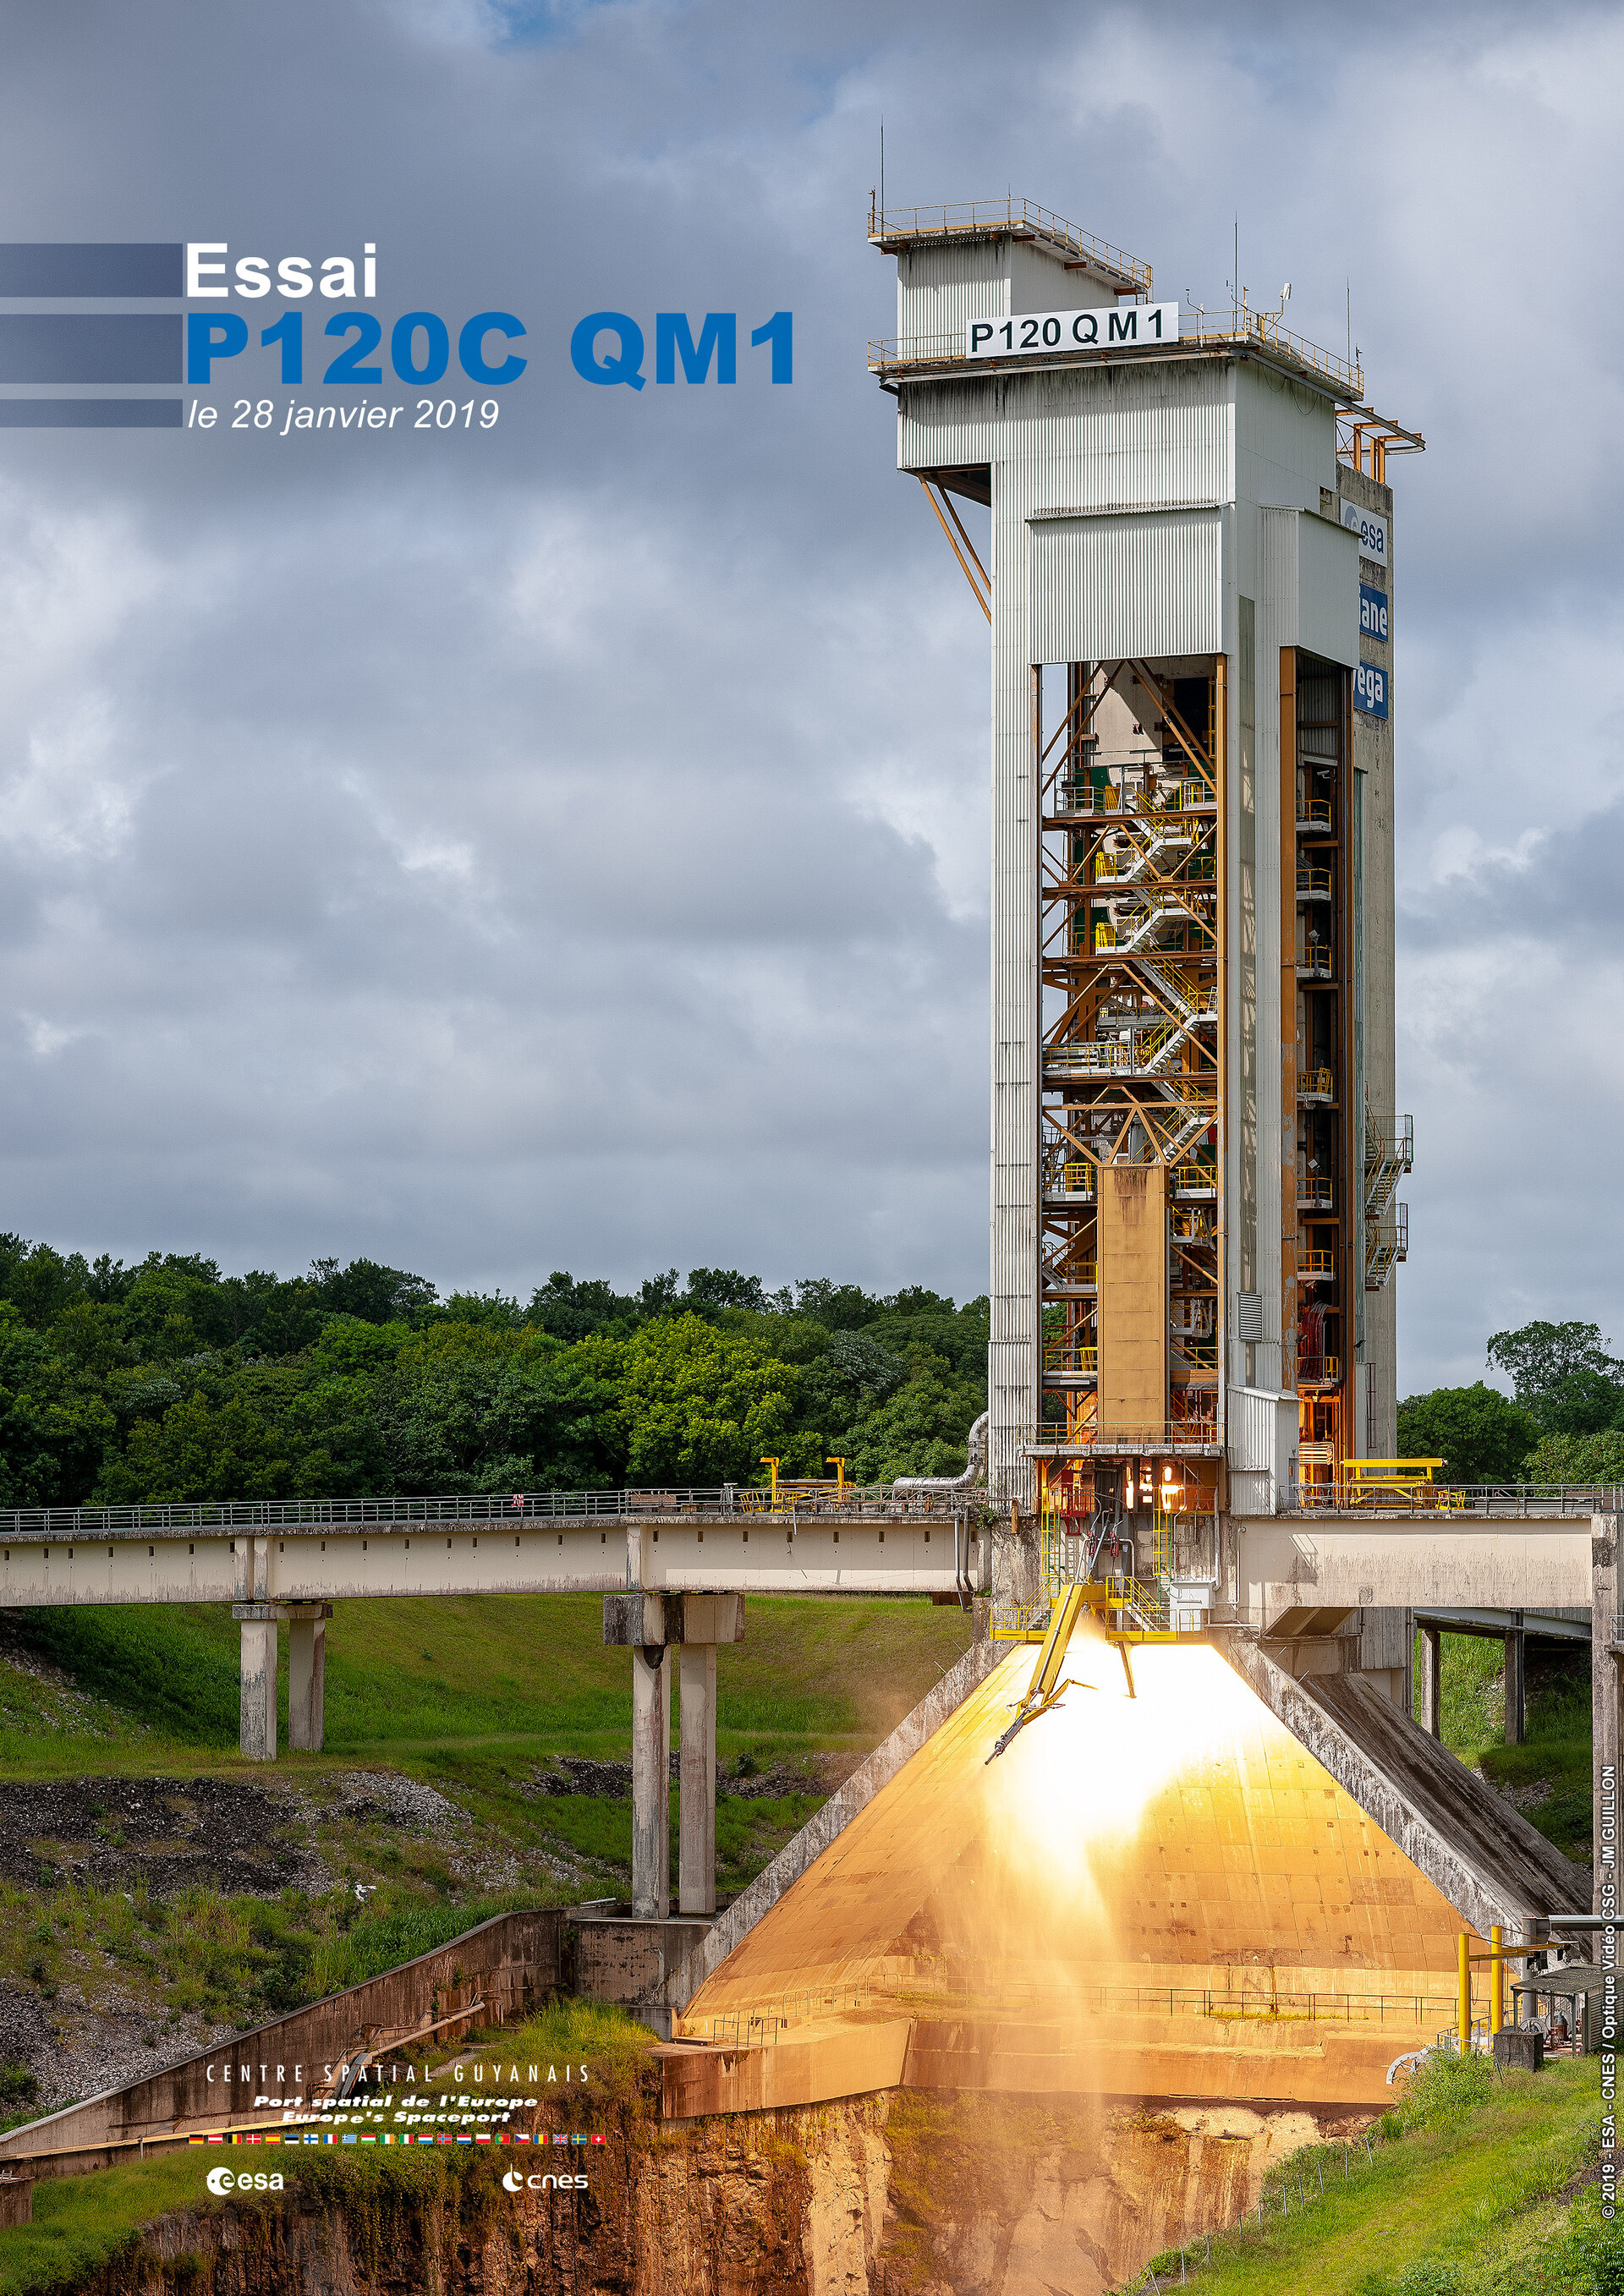 Hot firing of P120C solid rocket motor for Vega-C